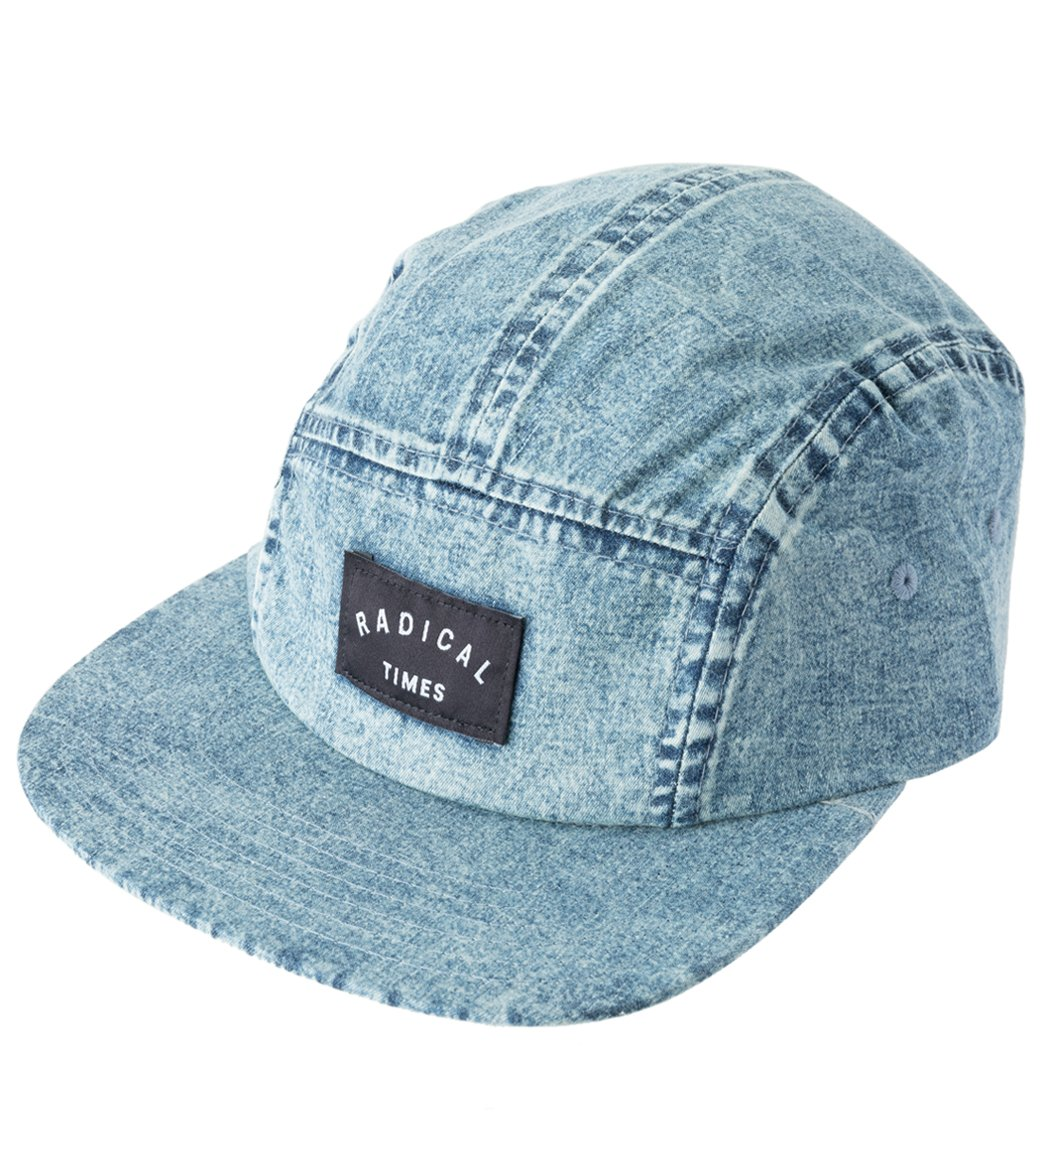 02cdc6925ea Quiksilver Men s Stay Radical Hat at SwimOutlet.com